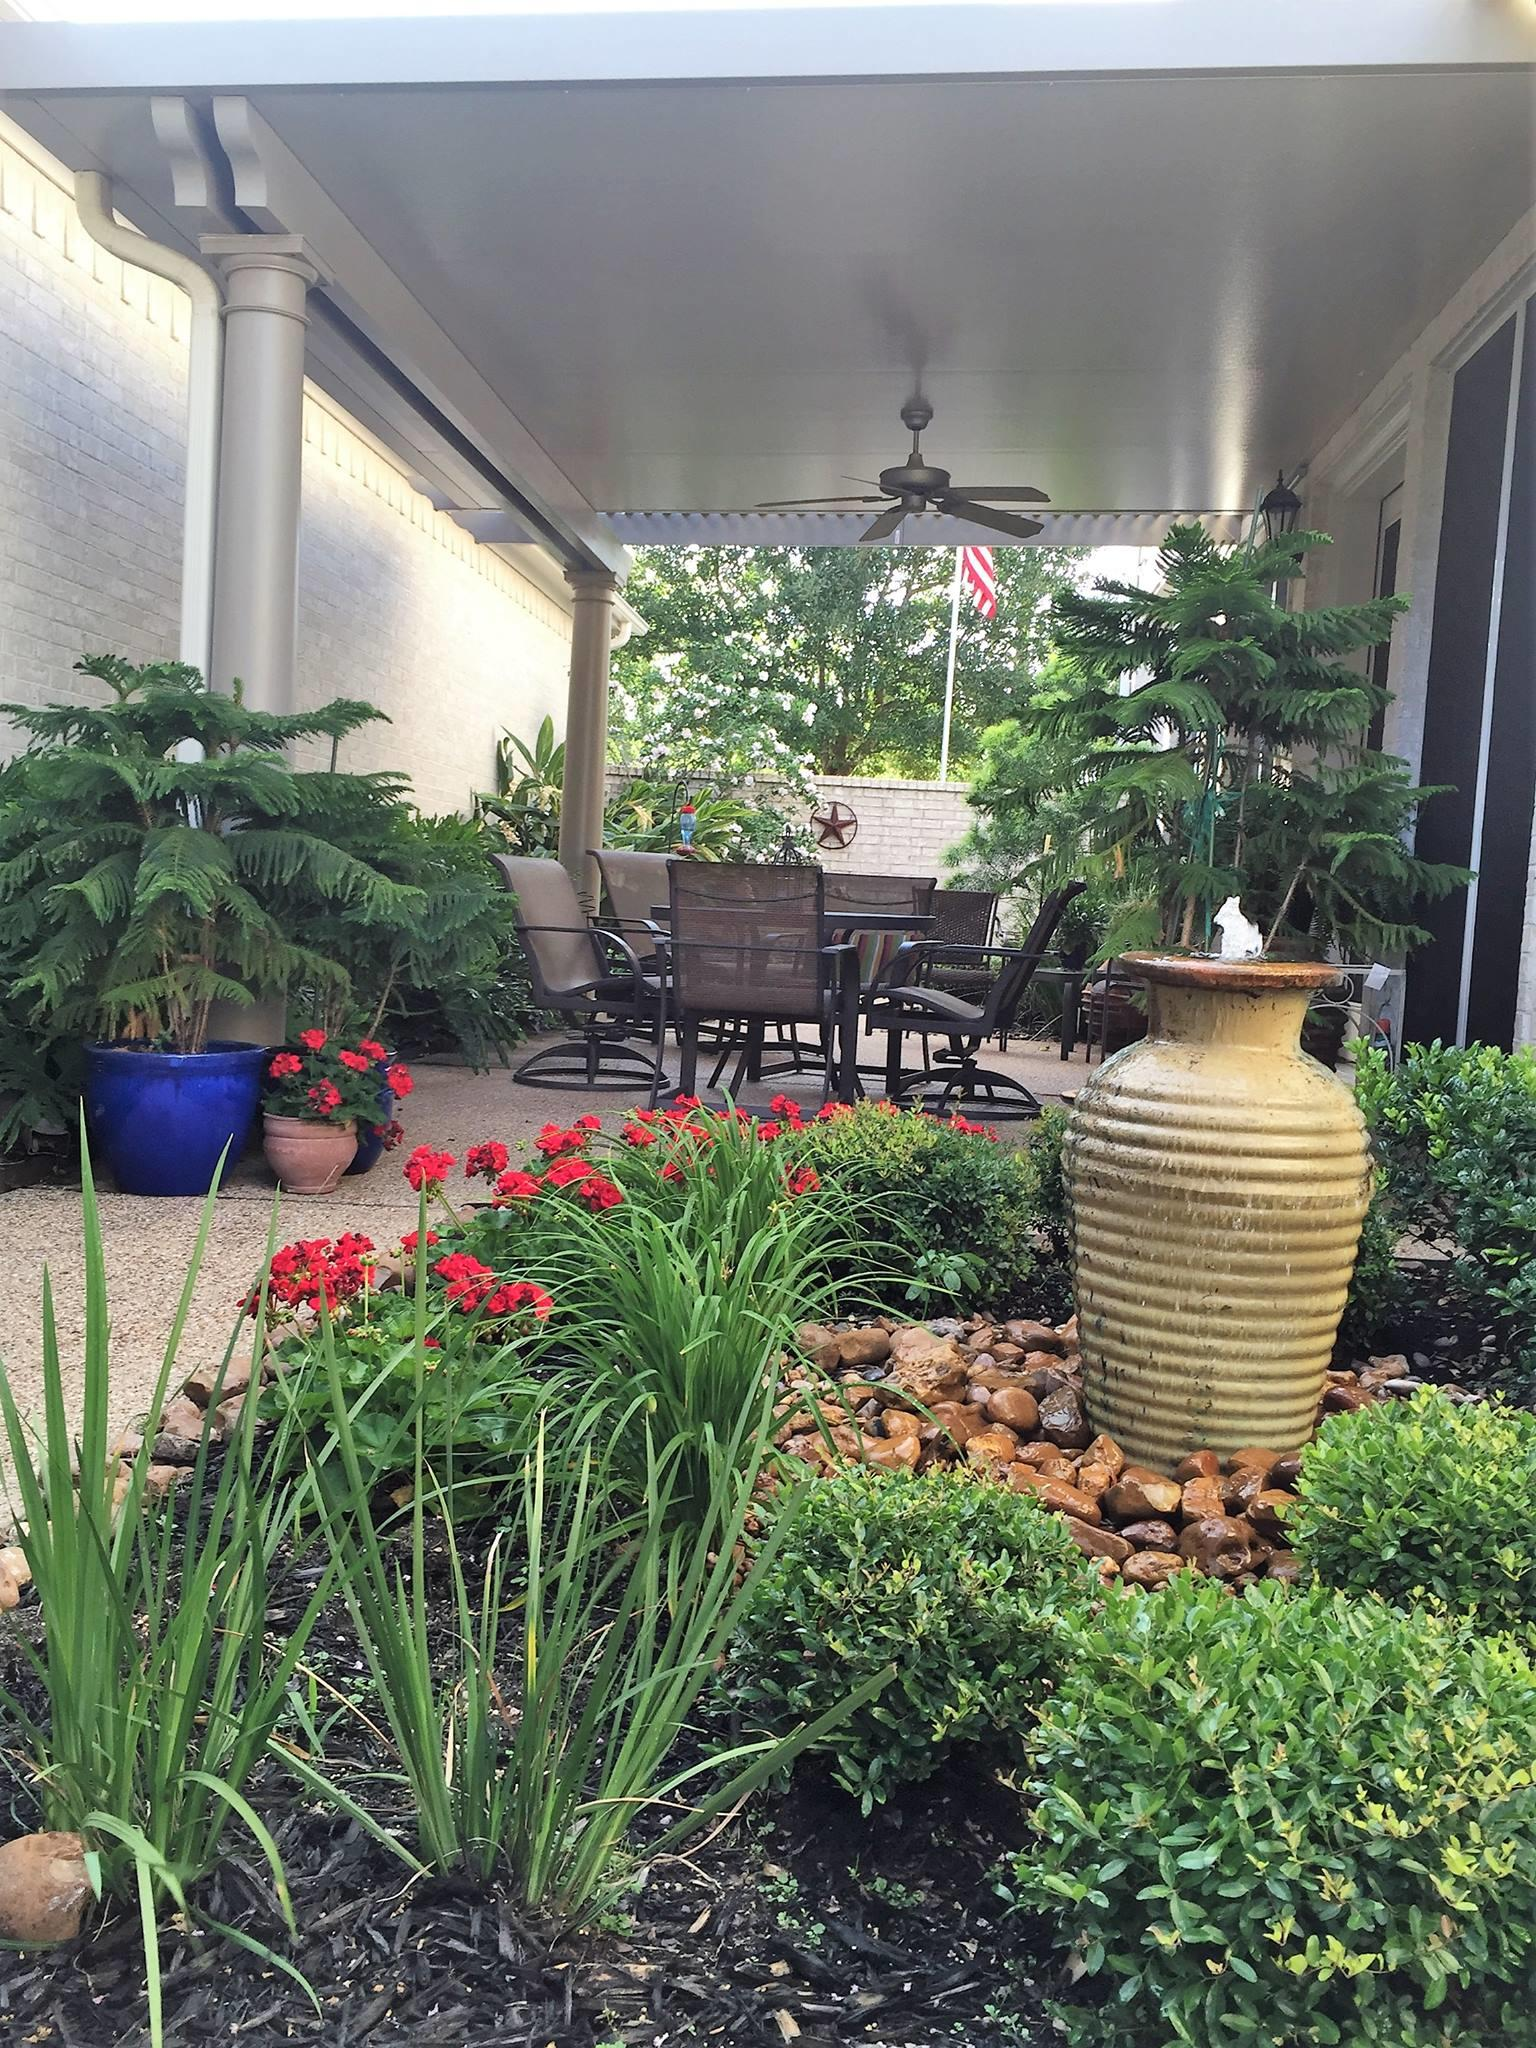 Lone Star Patio and Outdoor Living, LLC image 8